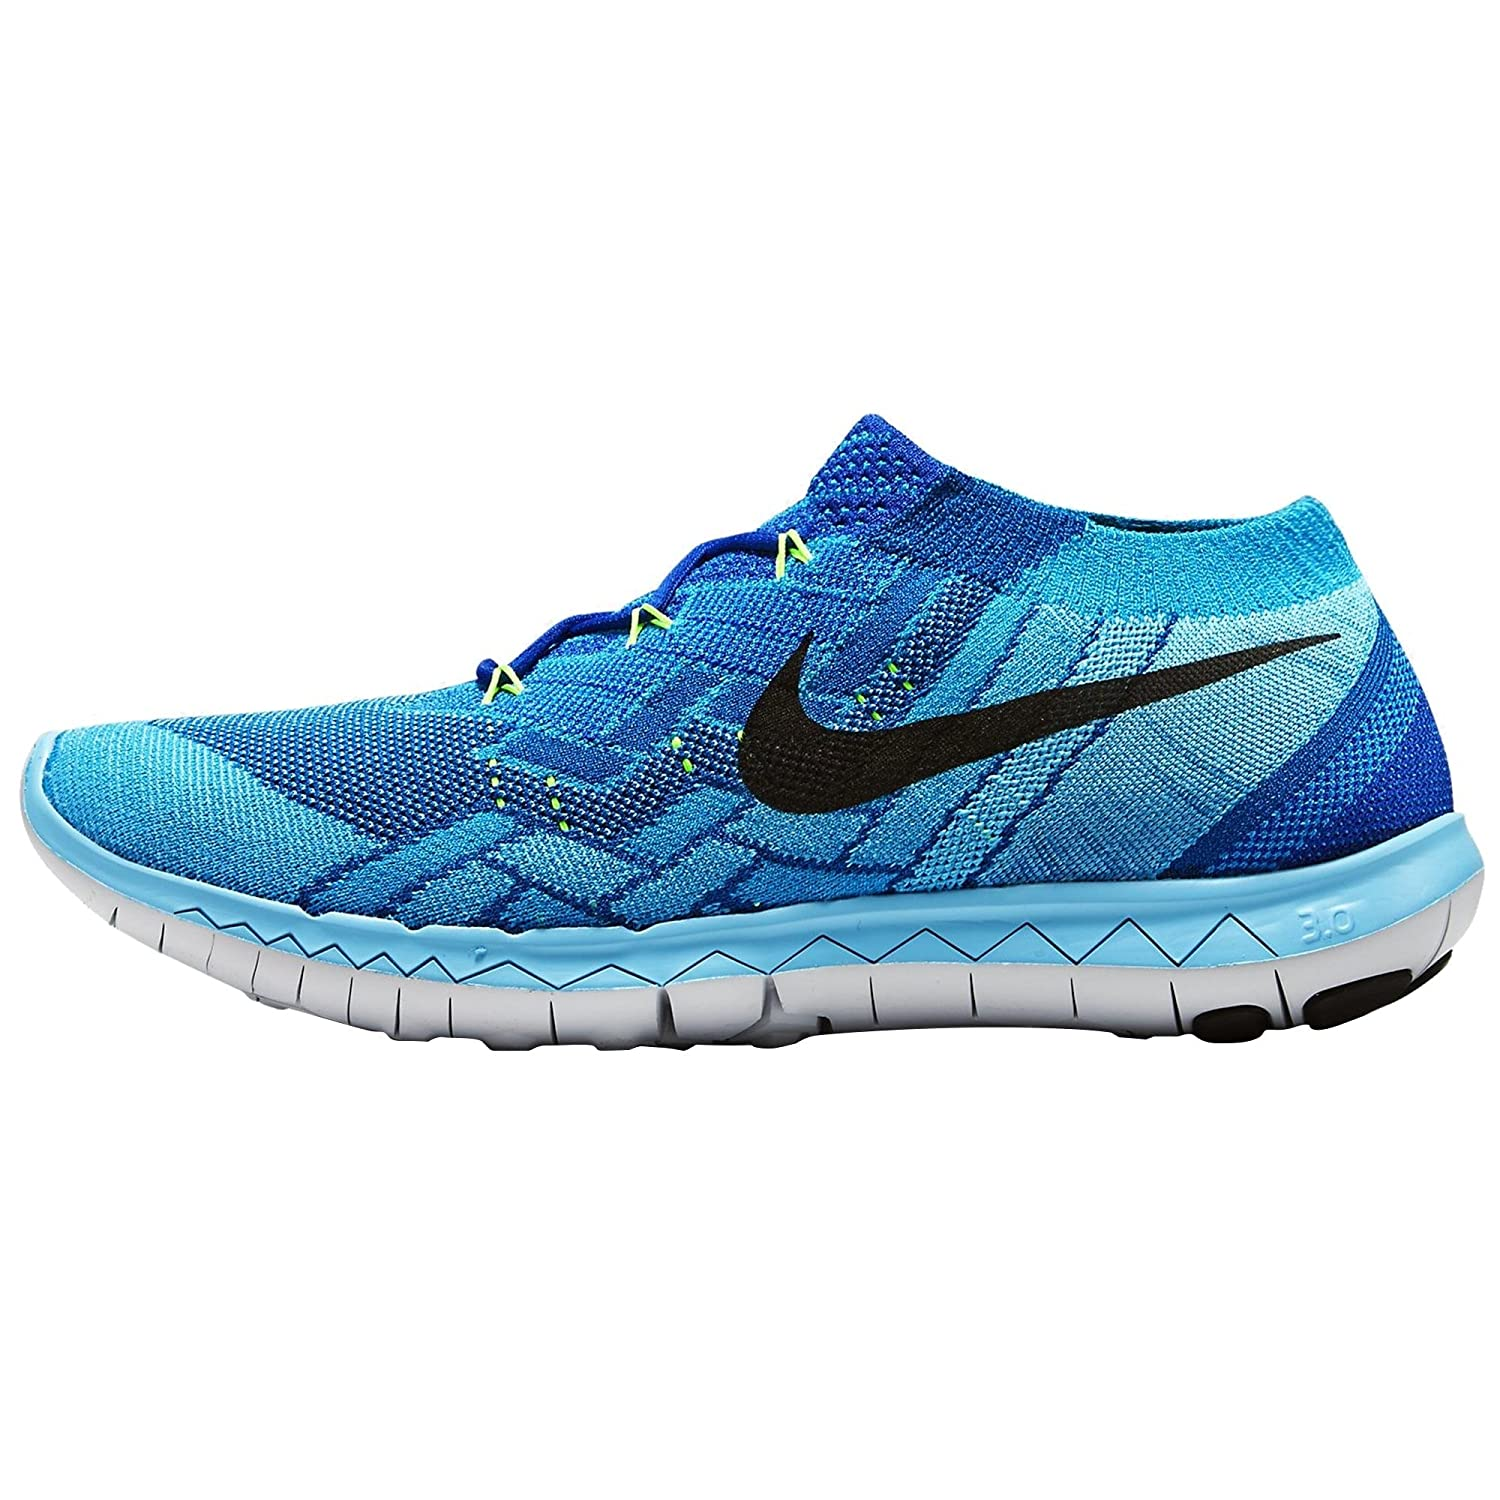 best service 907fa 66448 Nike Free 3.0 FlyKnit Mens Running Shoe Size 9  Amazon.ca  Shoes   Handbags